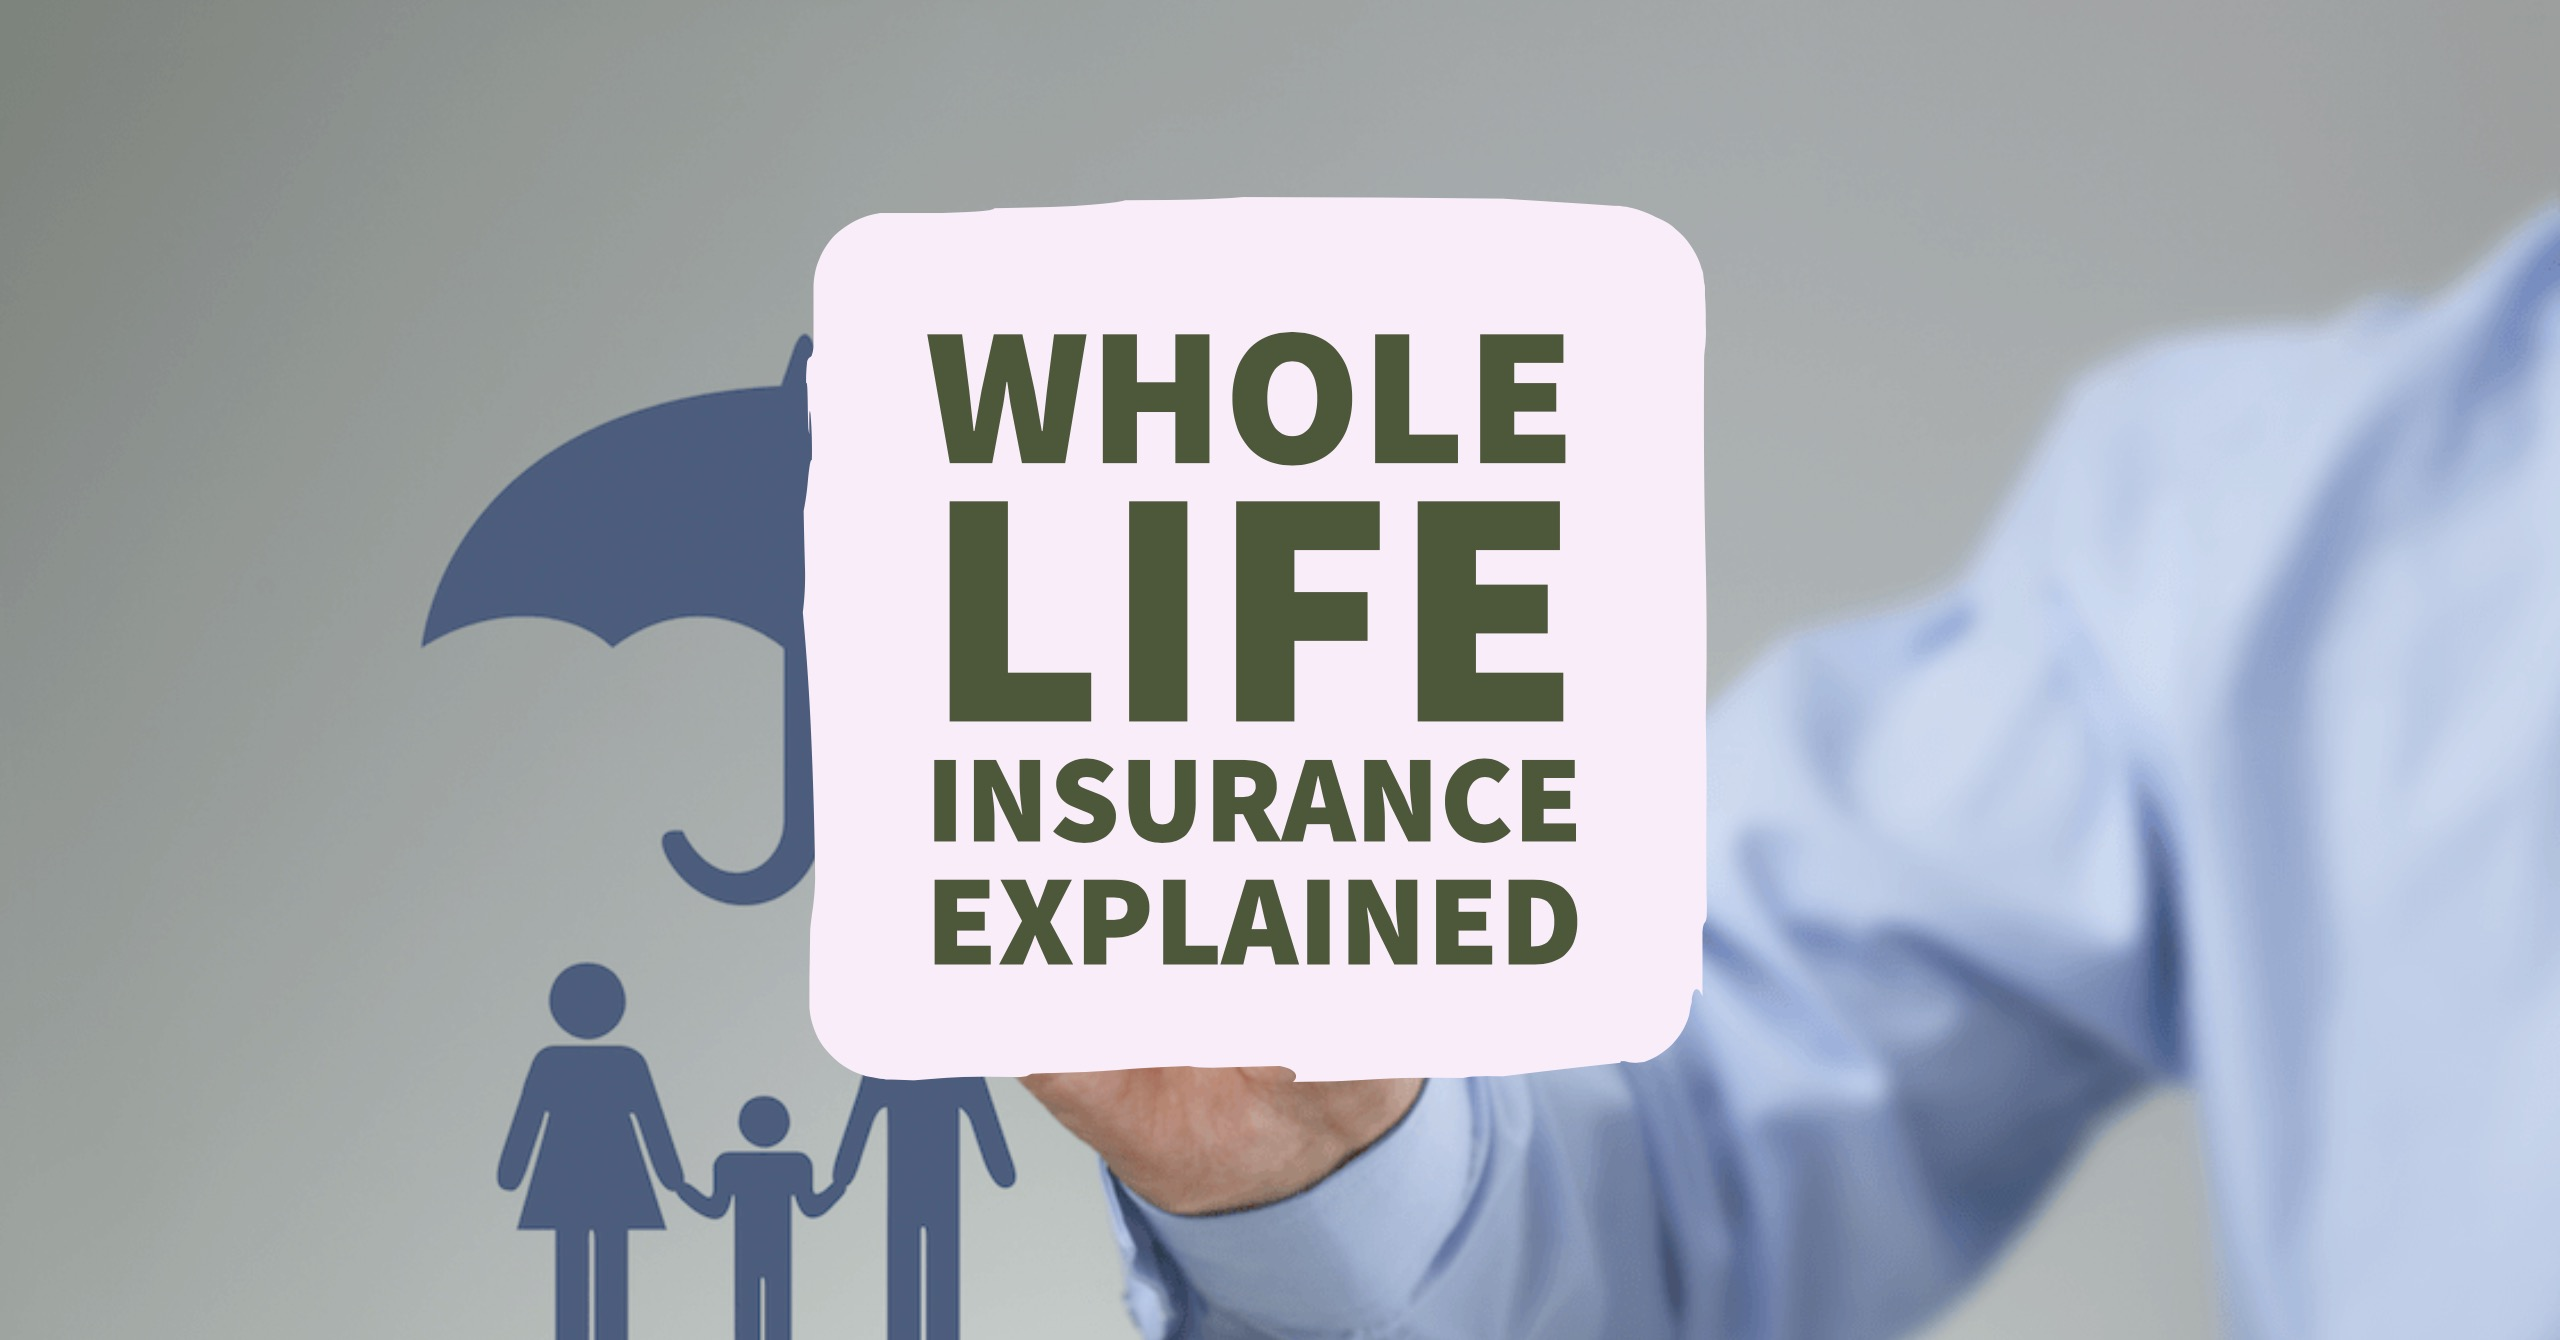 Cheap Whole Life Insurance Quotes Should You Get A Whole Life Insurance Policy We Explain In